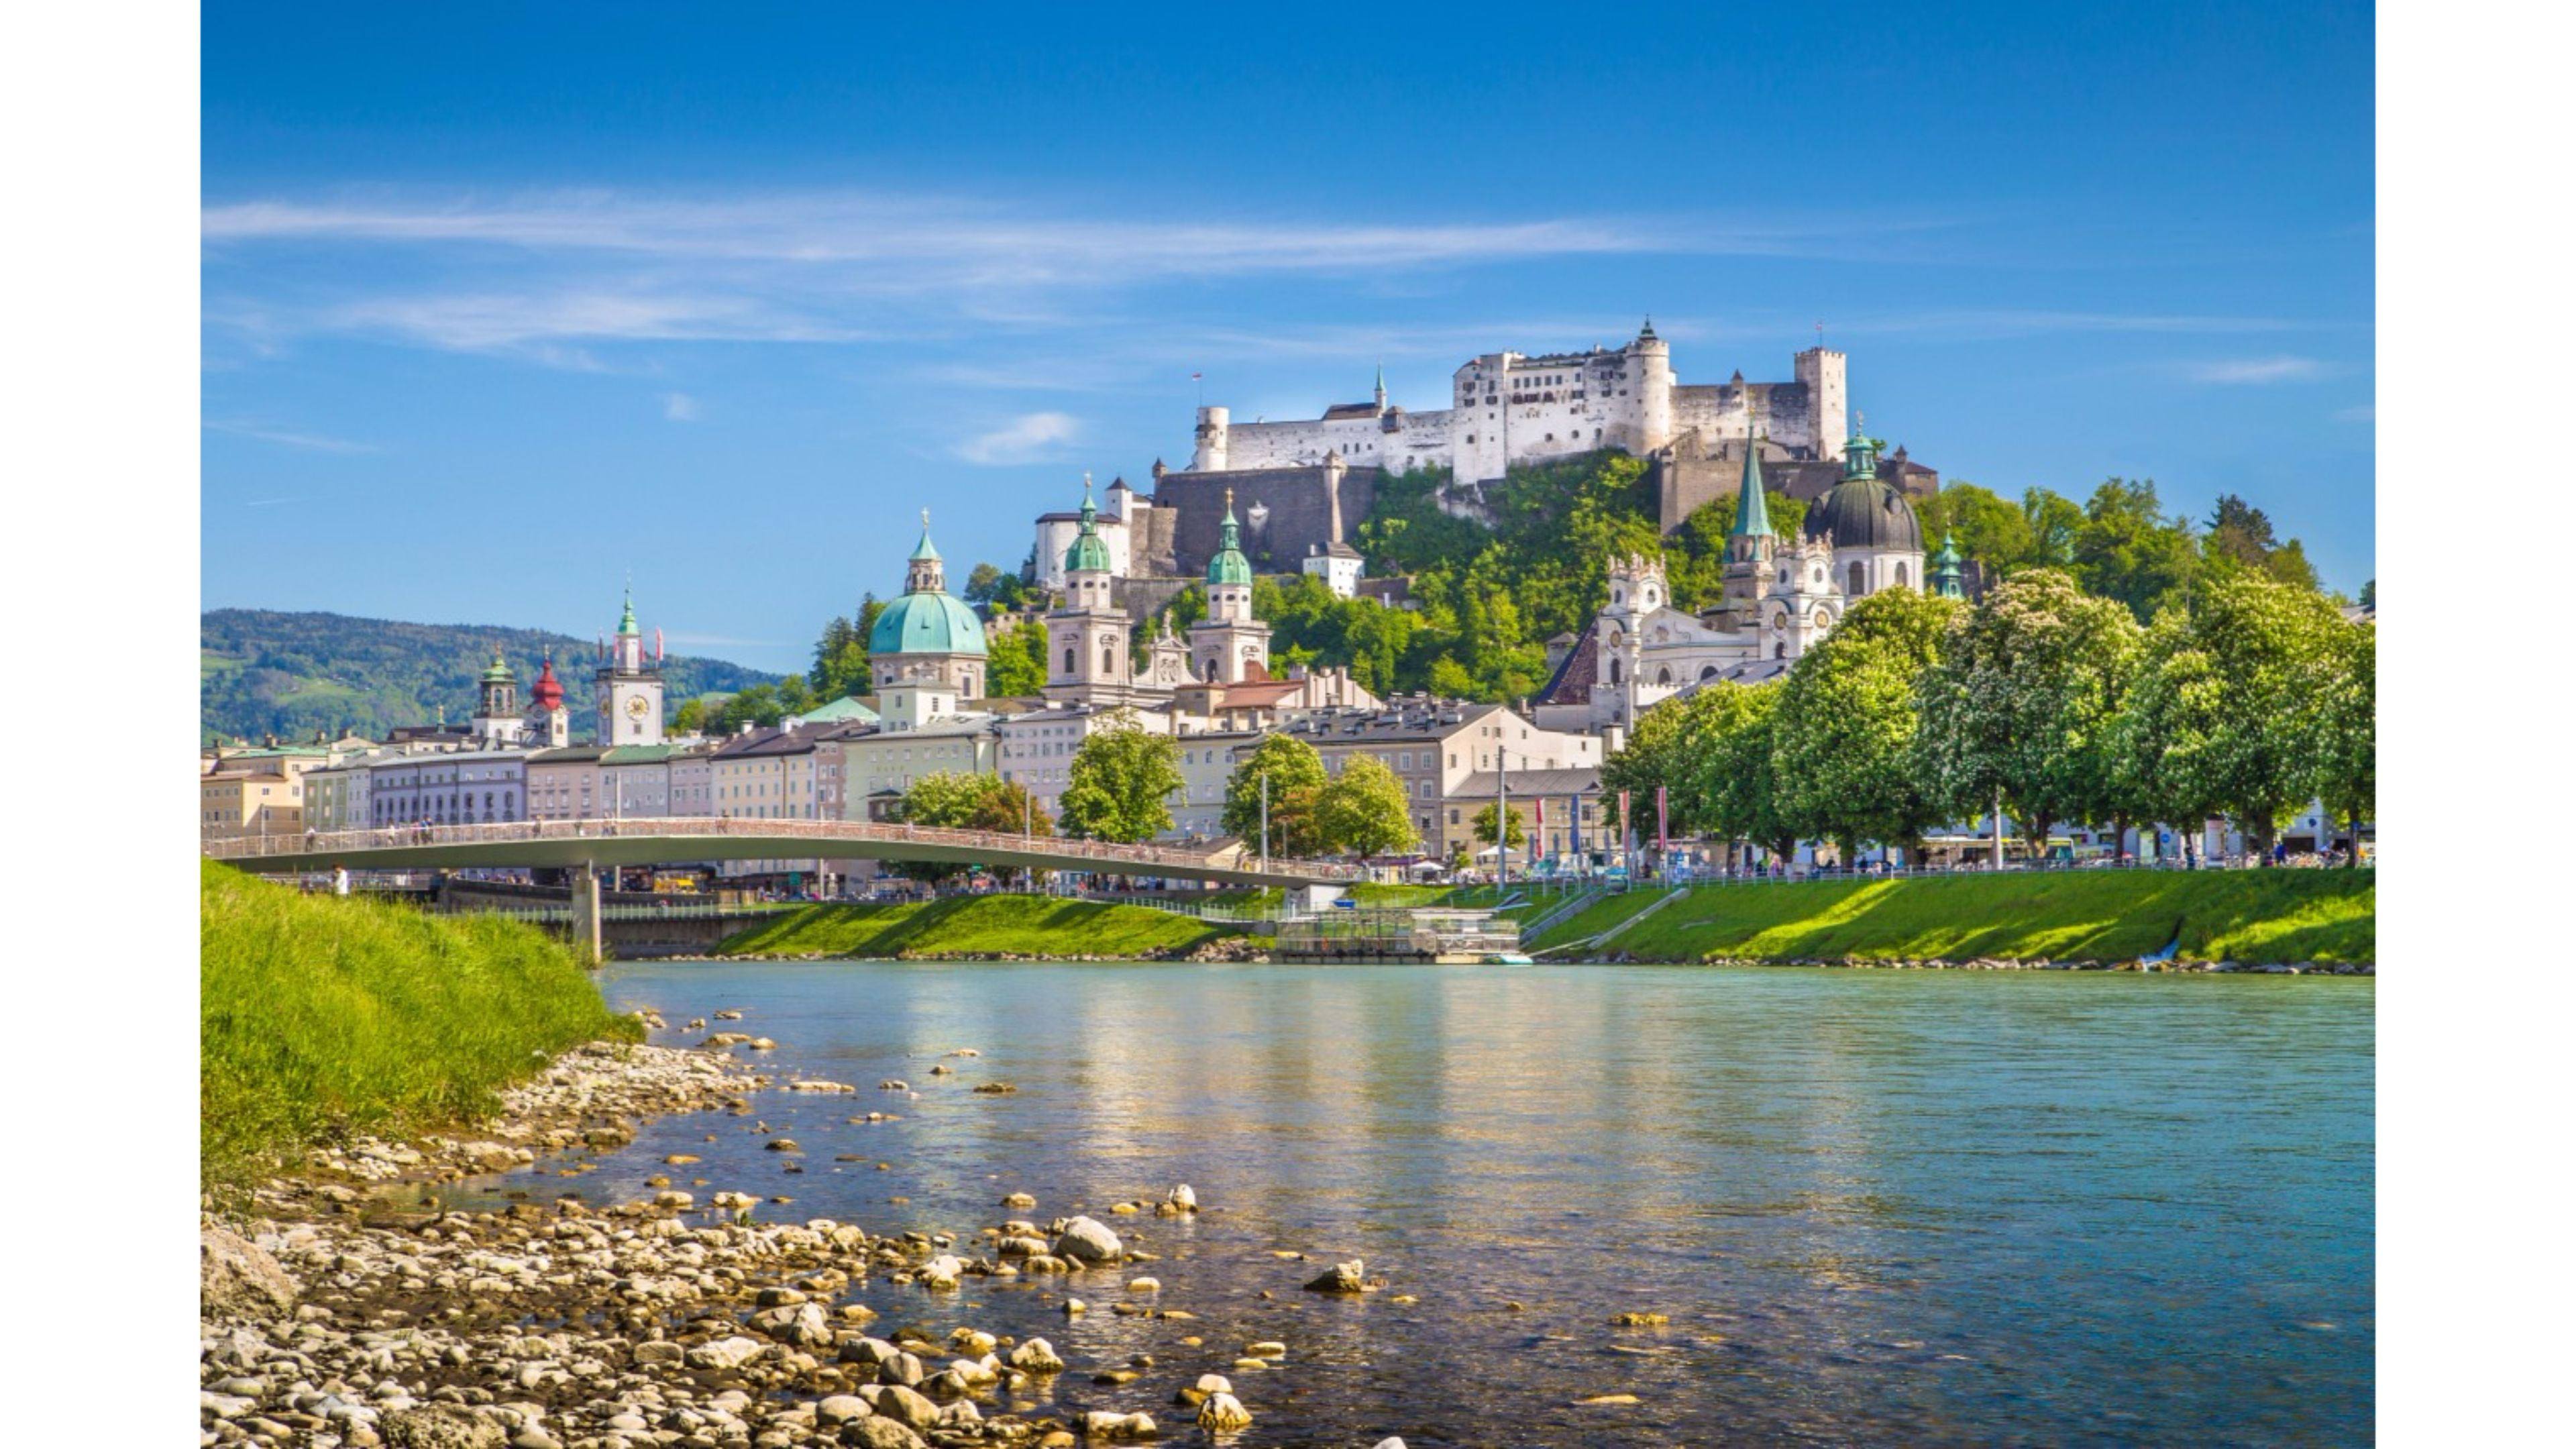 Salzburg Wallpapers and Background Images   stmednet 3840x2160